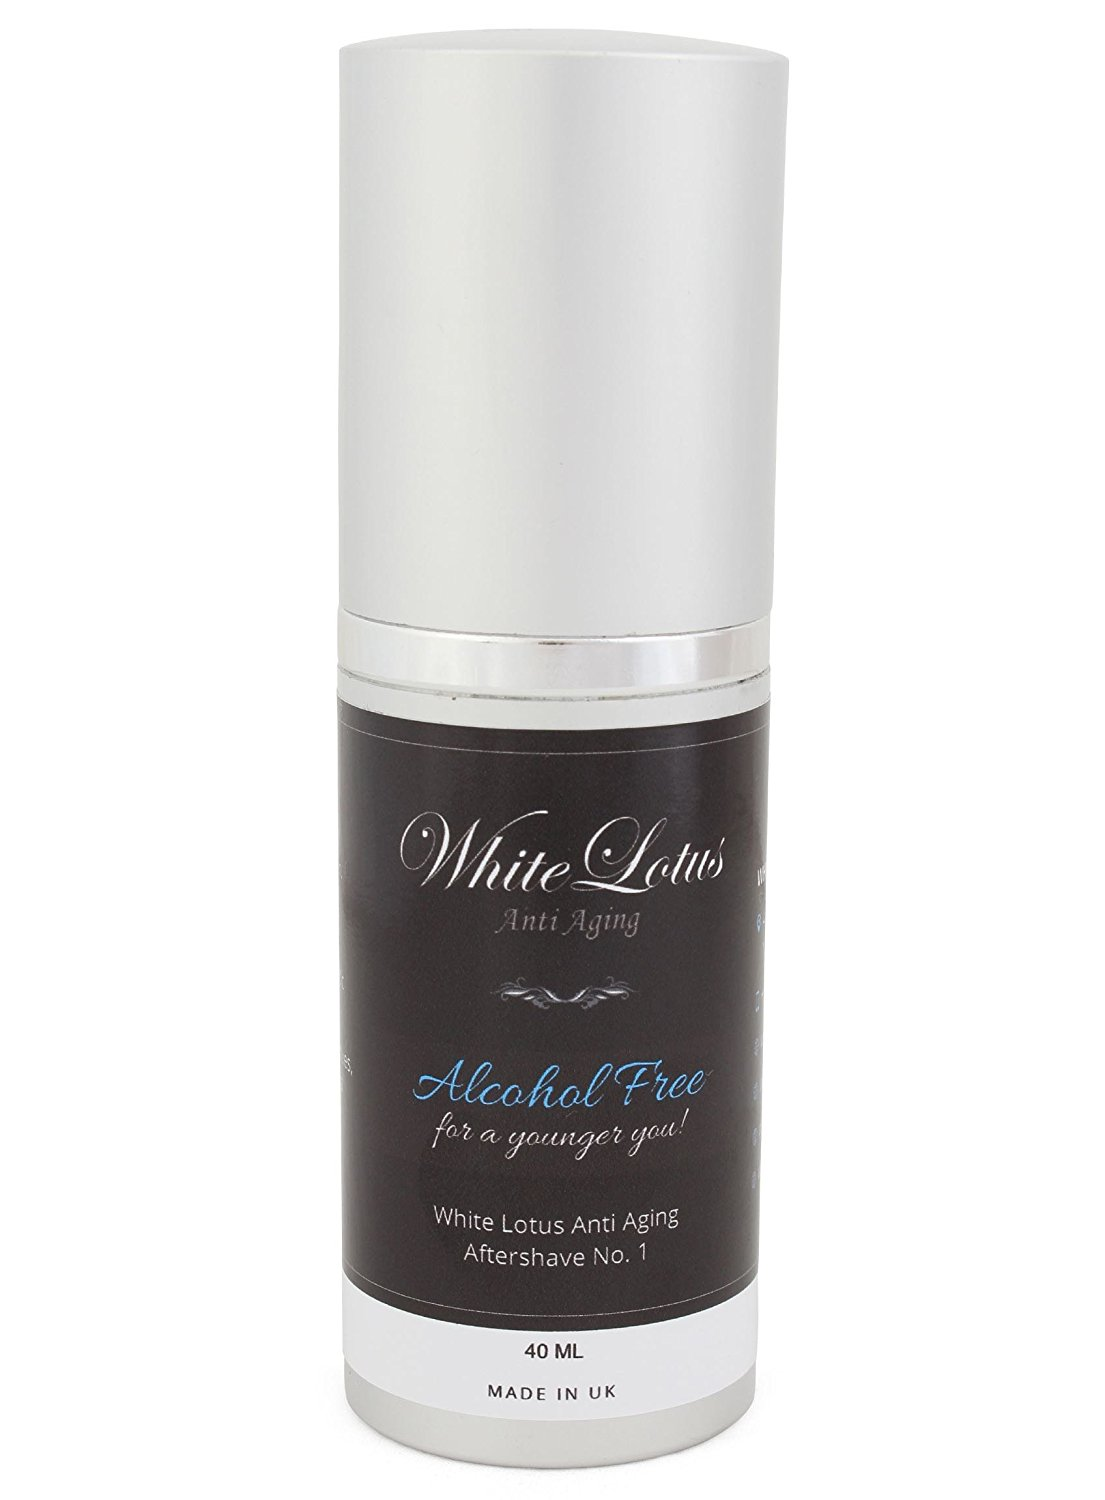 Alcohol Free Aftershave For Men- All Natural Aftershave Lotion No.1 by White Lotus Anti Aging. Natural Alcohol Free Cologne of Attar Oil- Less Dry Skin For Less Wrinkles, Redness & Soreness- 40mL